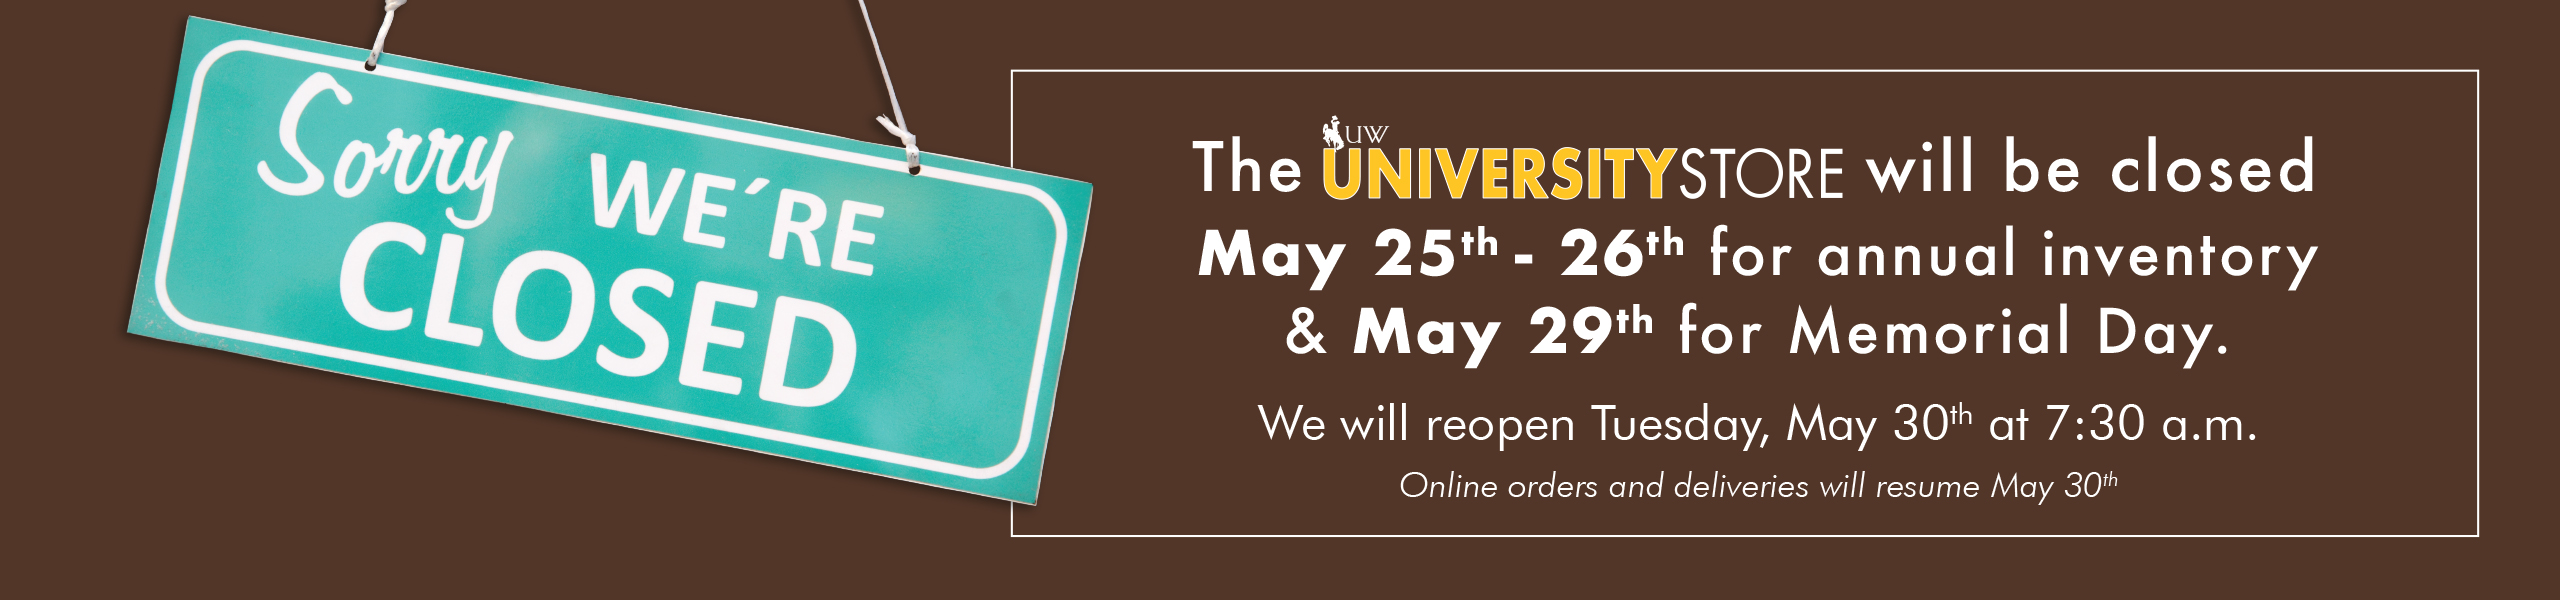 The University Store will be closed May 25th and 26th for Inventory